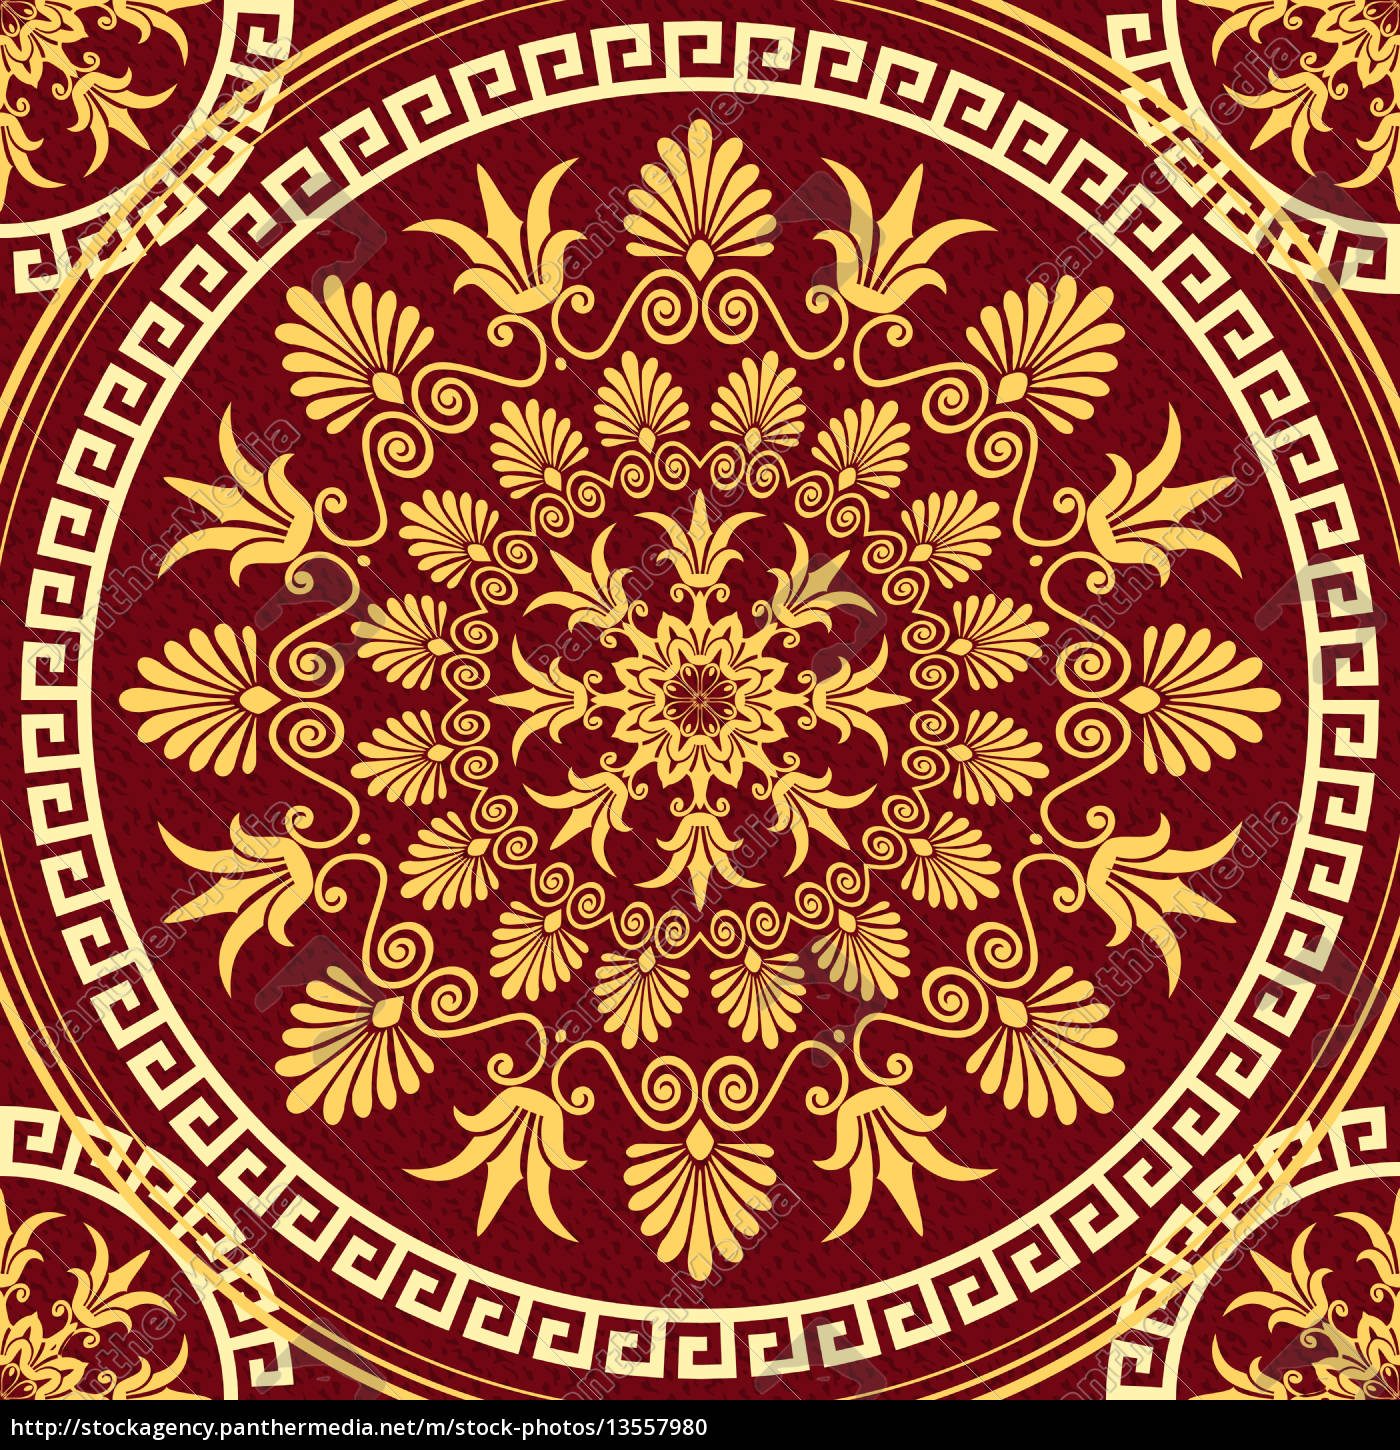 vector, seamless, elegant, lace, gold, ornament - 13557980